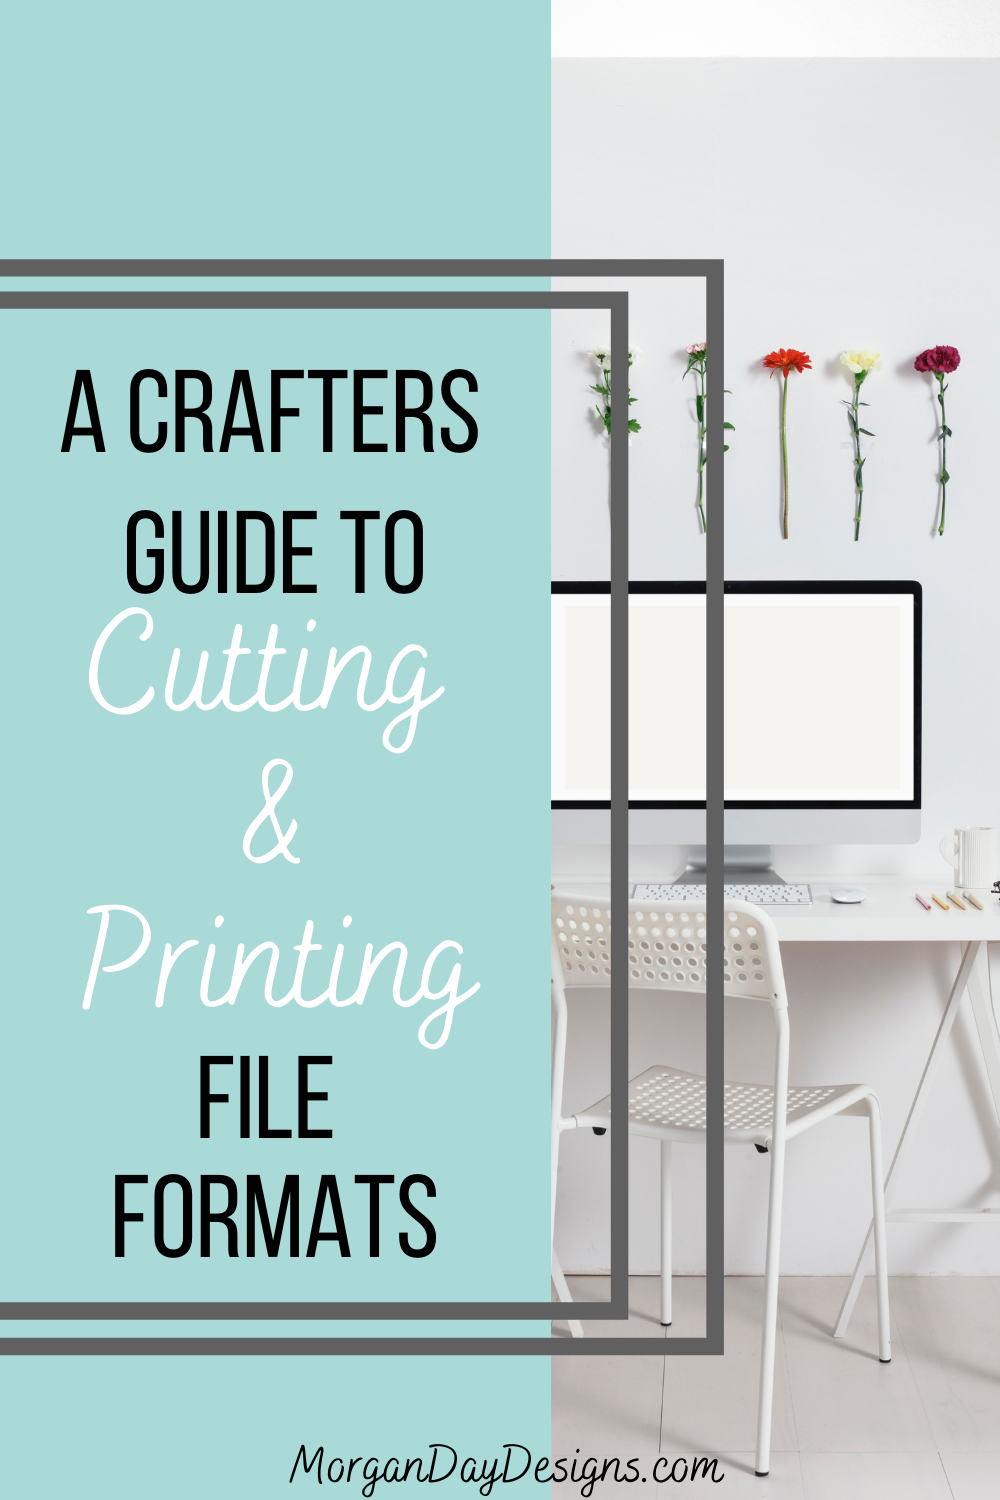 A Crafters Guide To Cutting & Printing File Formats